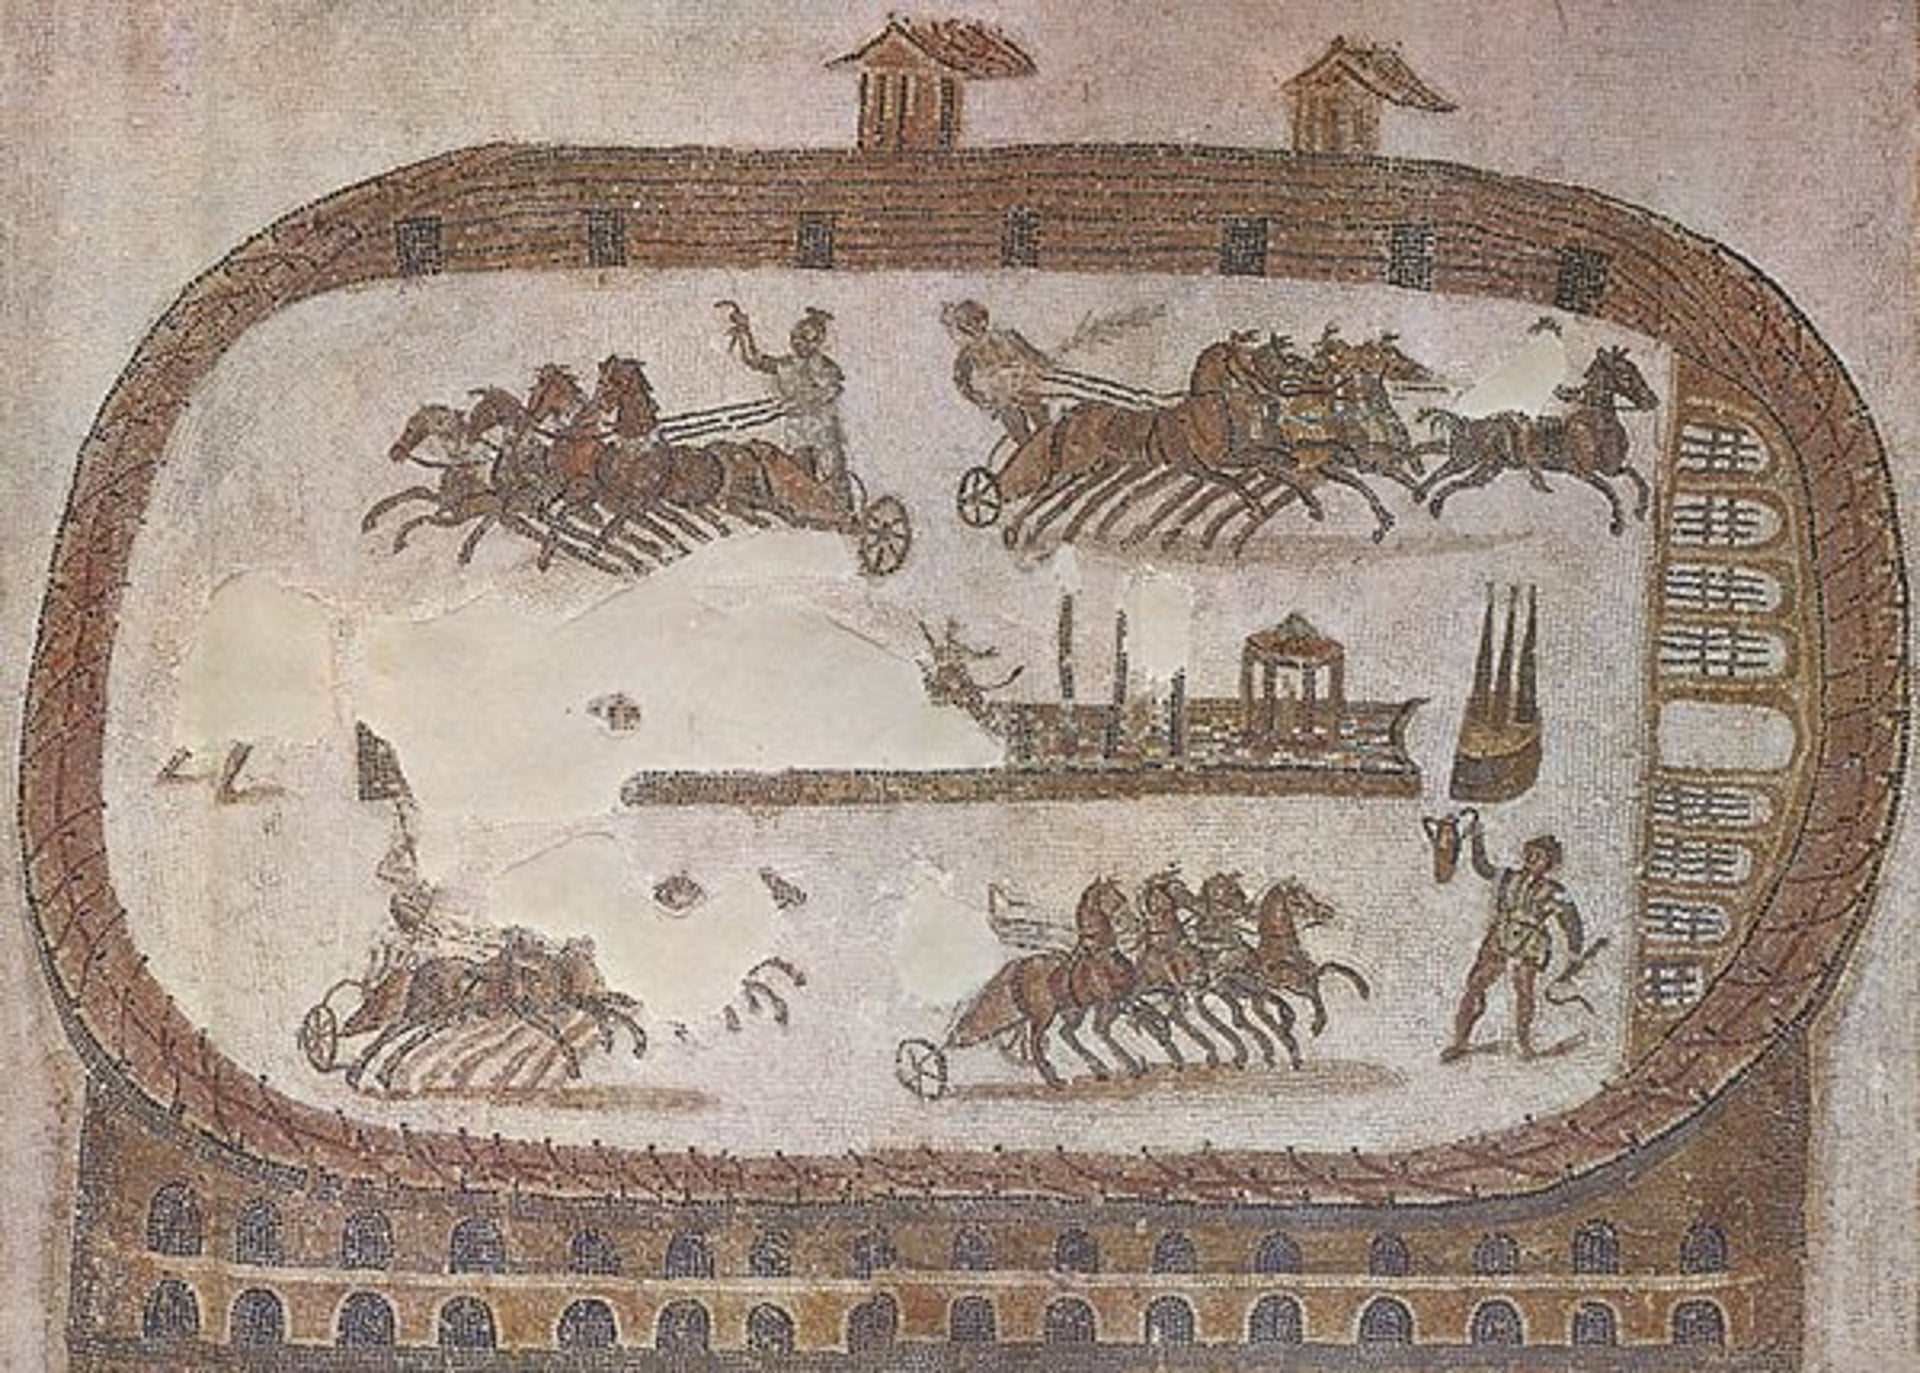 A mosaic showing the Carthage Circus.